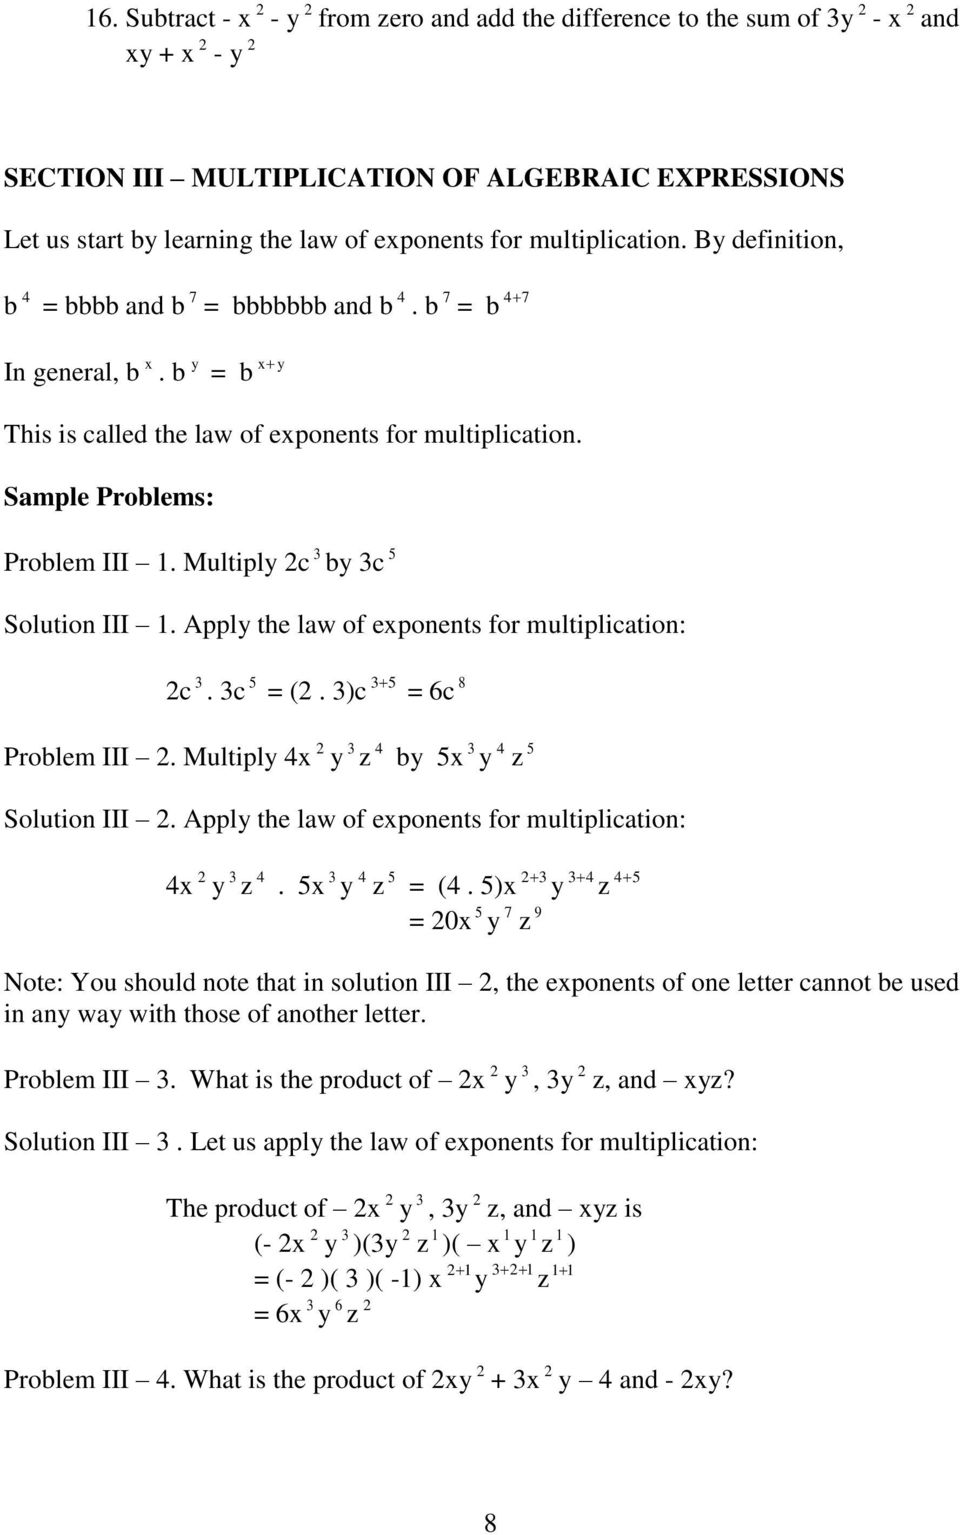 Sample Problems: Problem III 1. Multiply 2c 3 by 3c 5 Solution III 1. Apply the law of exponents for multiplication: 2c 3. 3c 5 = (2. 3)c 3 5 = 6c 8 Problem III 2.